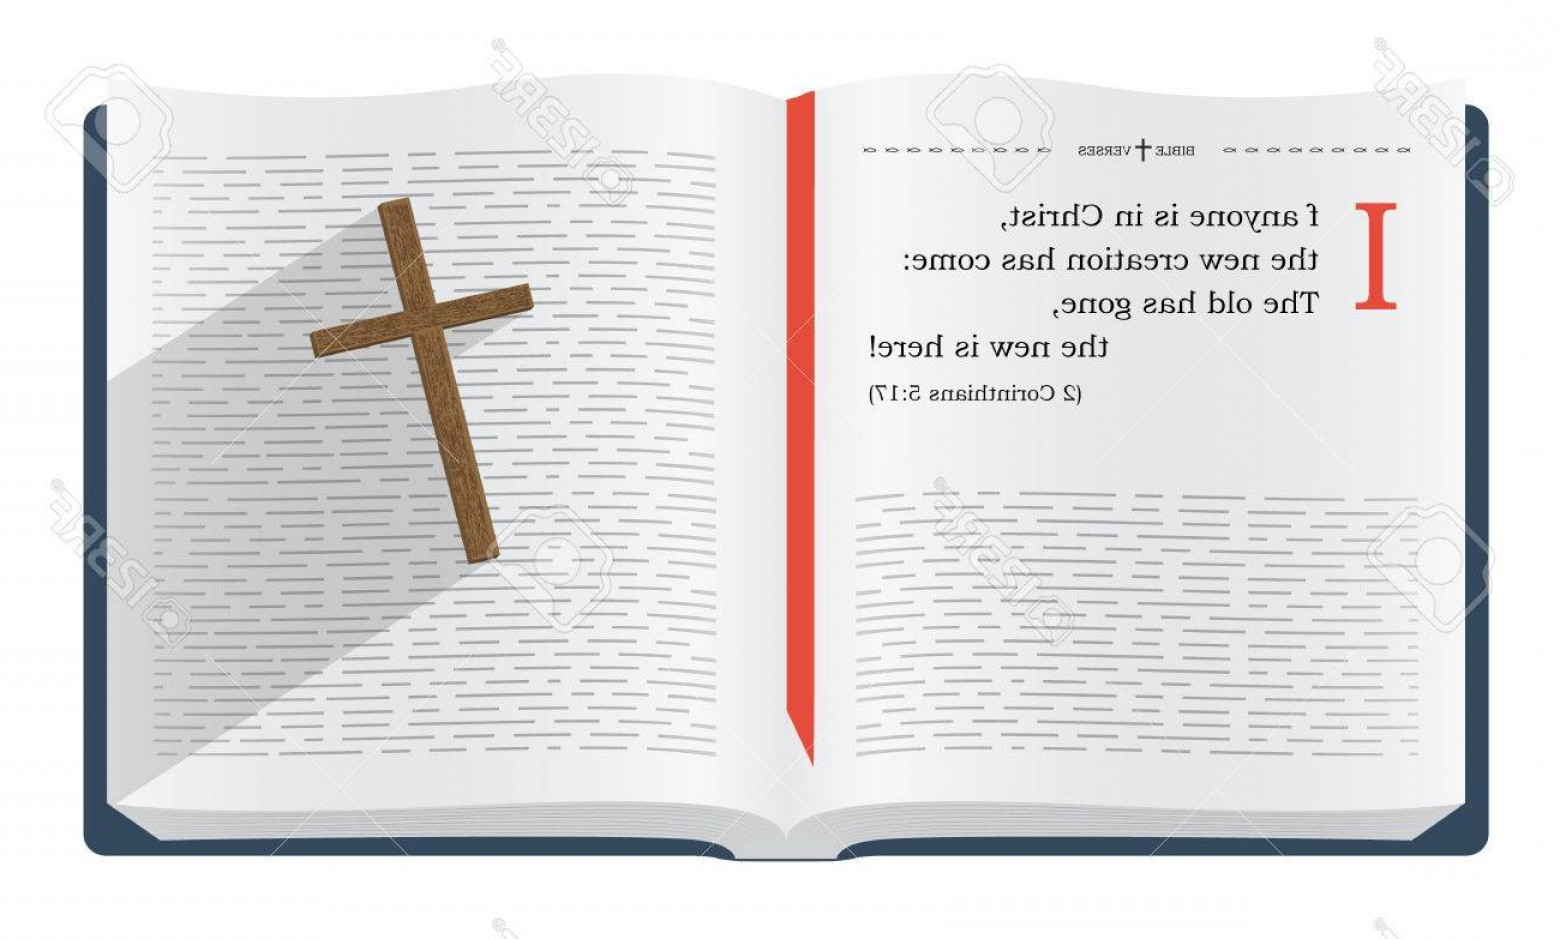 Bible Class Background Vector: Photostock Illustration Best Bible Verses To Remember John About How We Become New Creation In Jesus Christ Holy Scrip